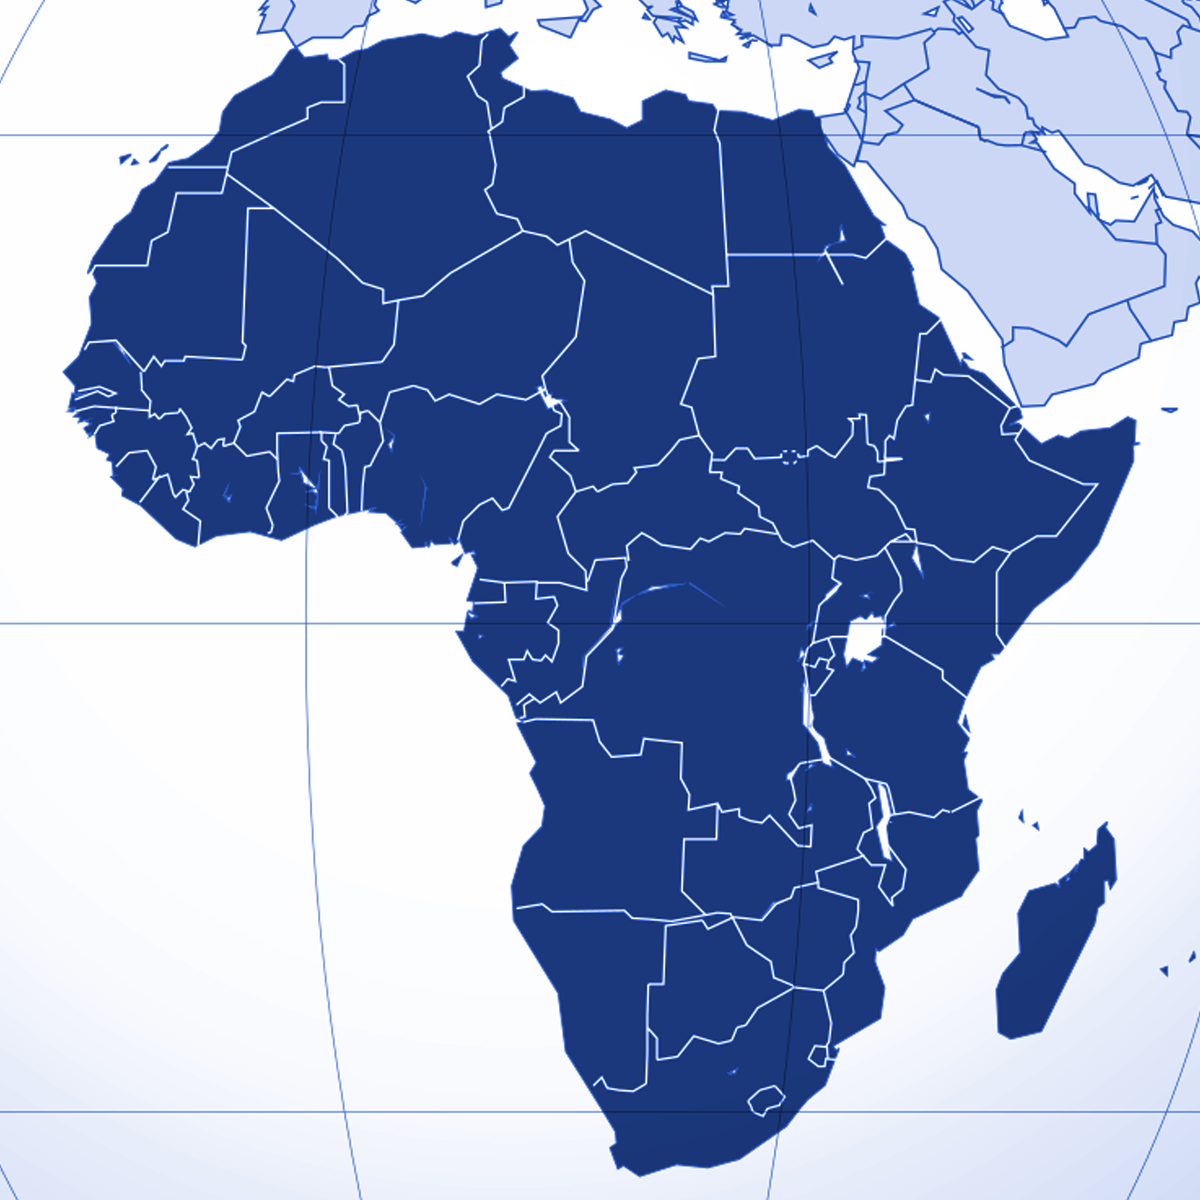 Africa region | Blue | Atrax Group | Atrax reference locations - Africa